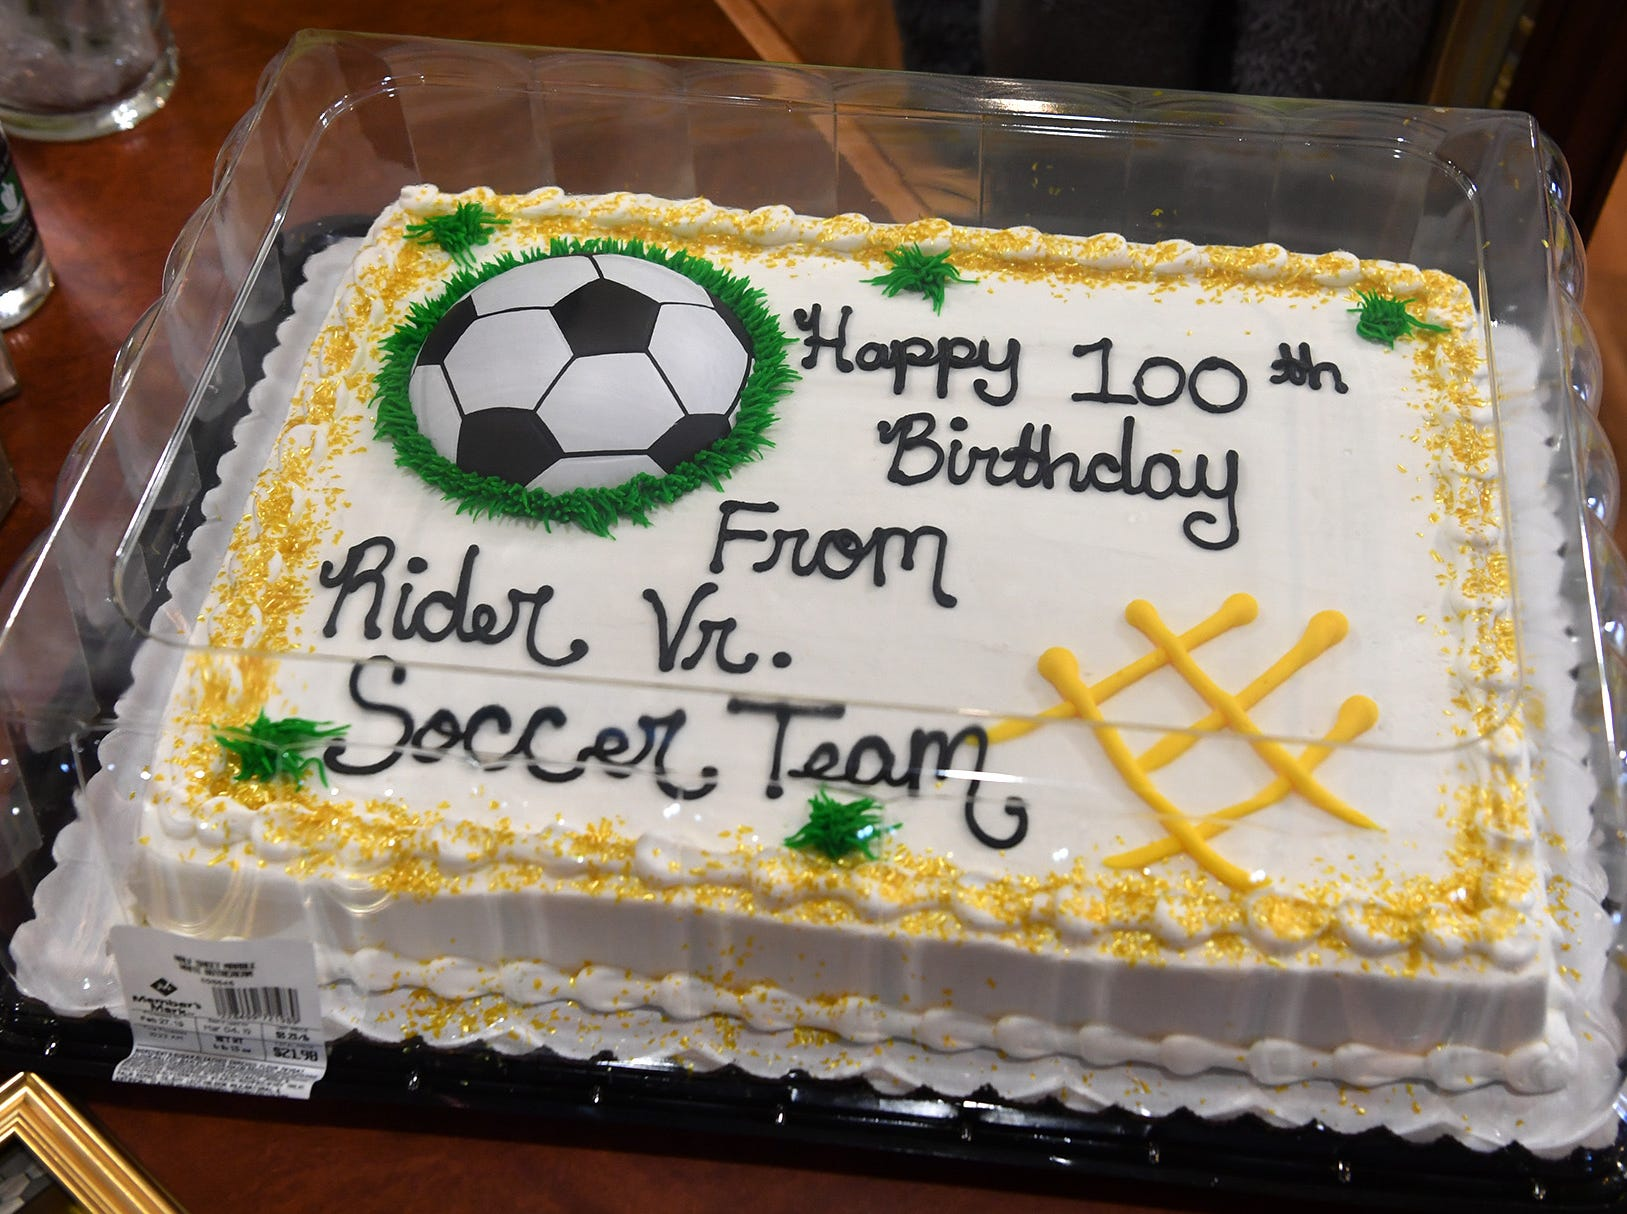 A birthday cake, t-shirt, balloons and flowers were delivered by the Rider High soccer team to Joe Cuba Wednesday. Cuba's family requested on social media for him to receive 100 cards for his 100th birthday and he's received approximately 16,000.